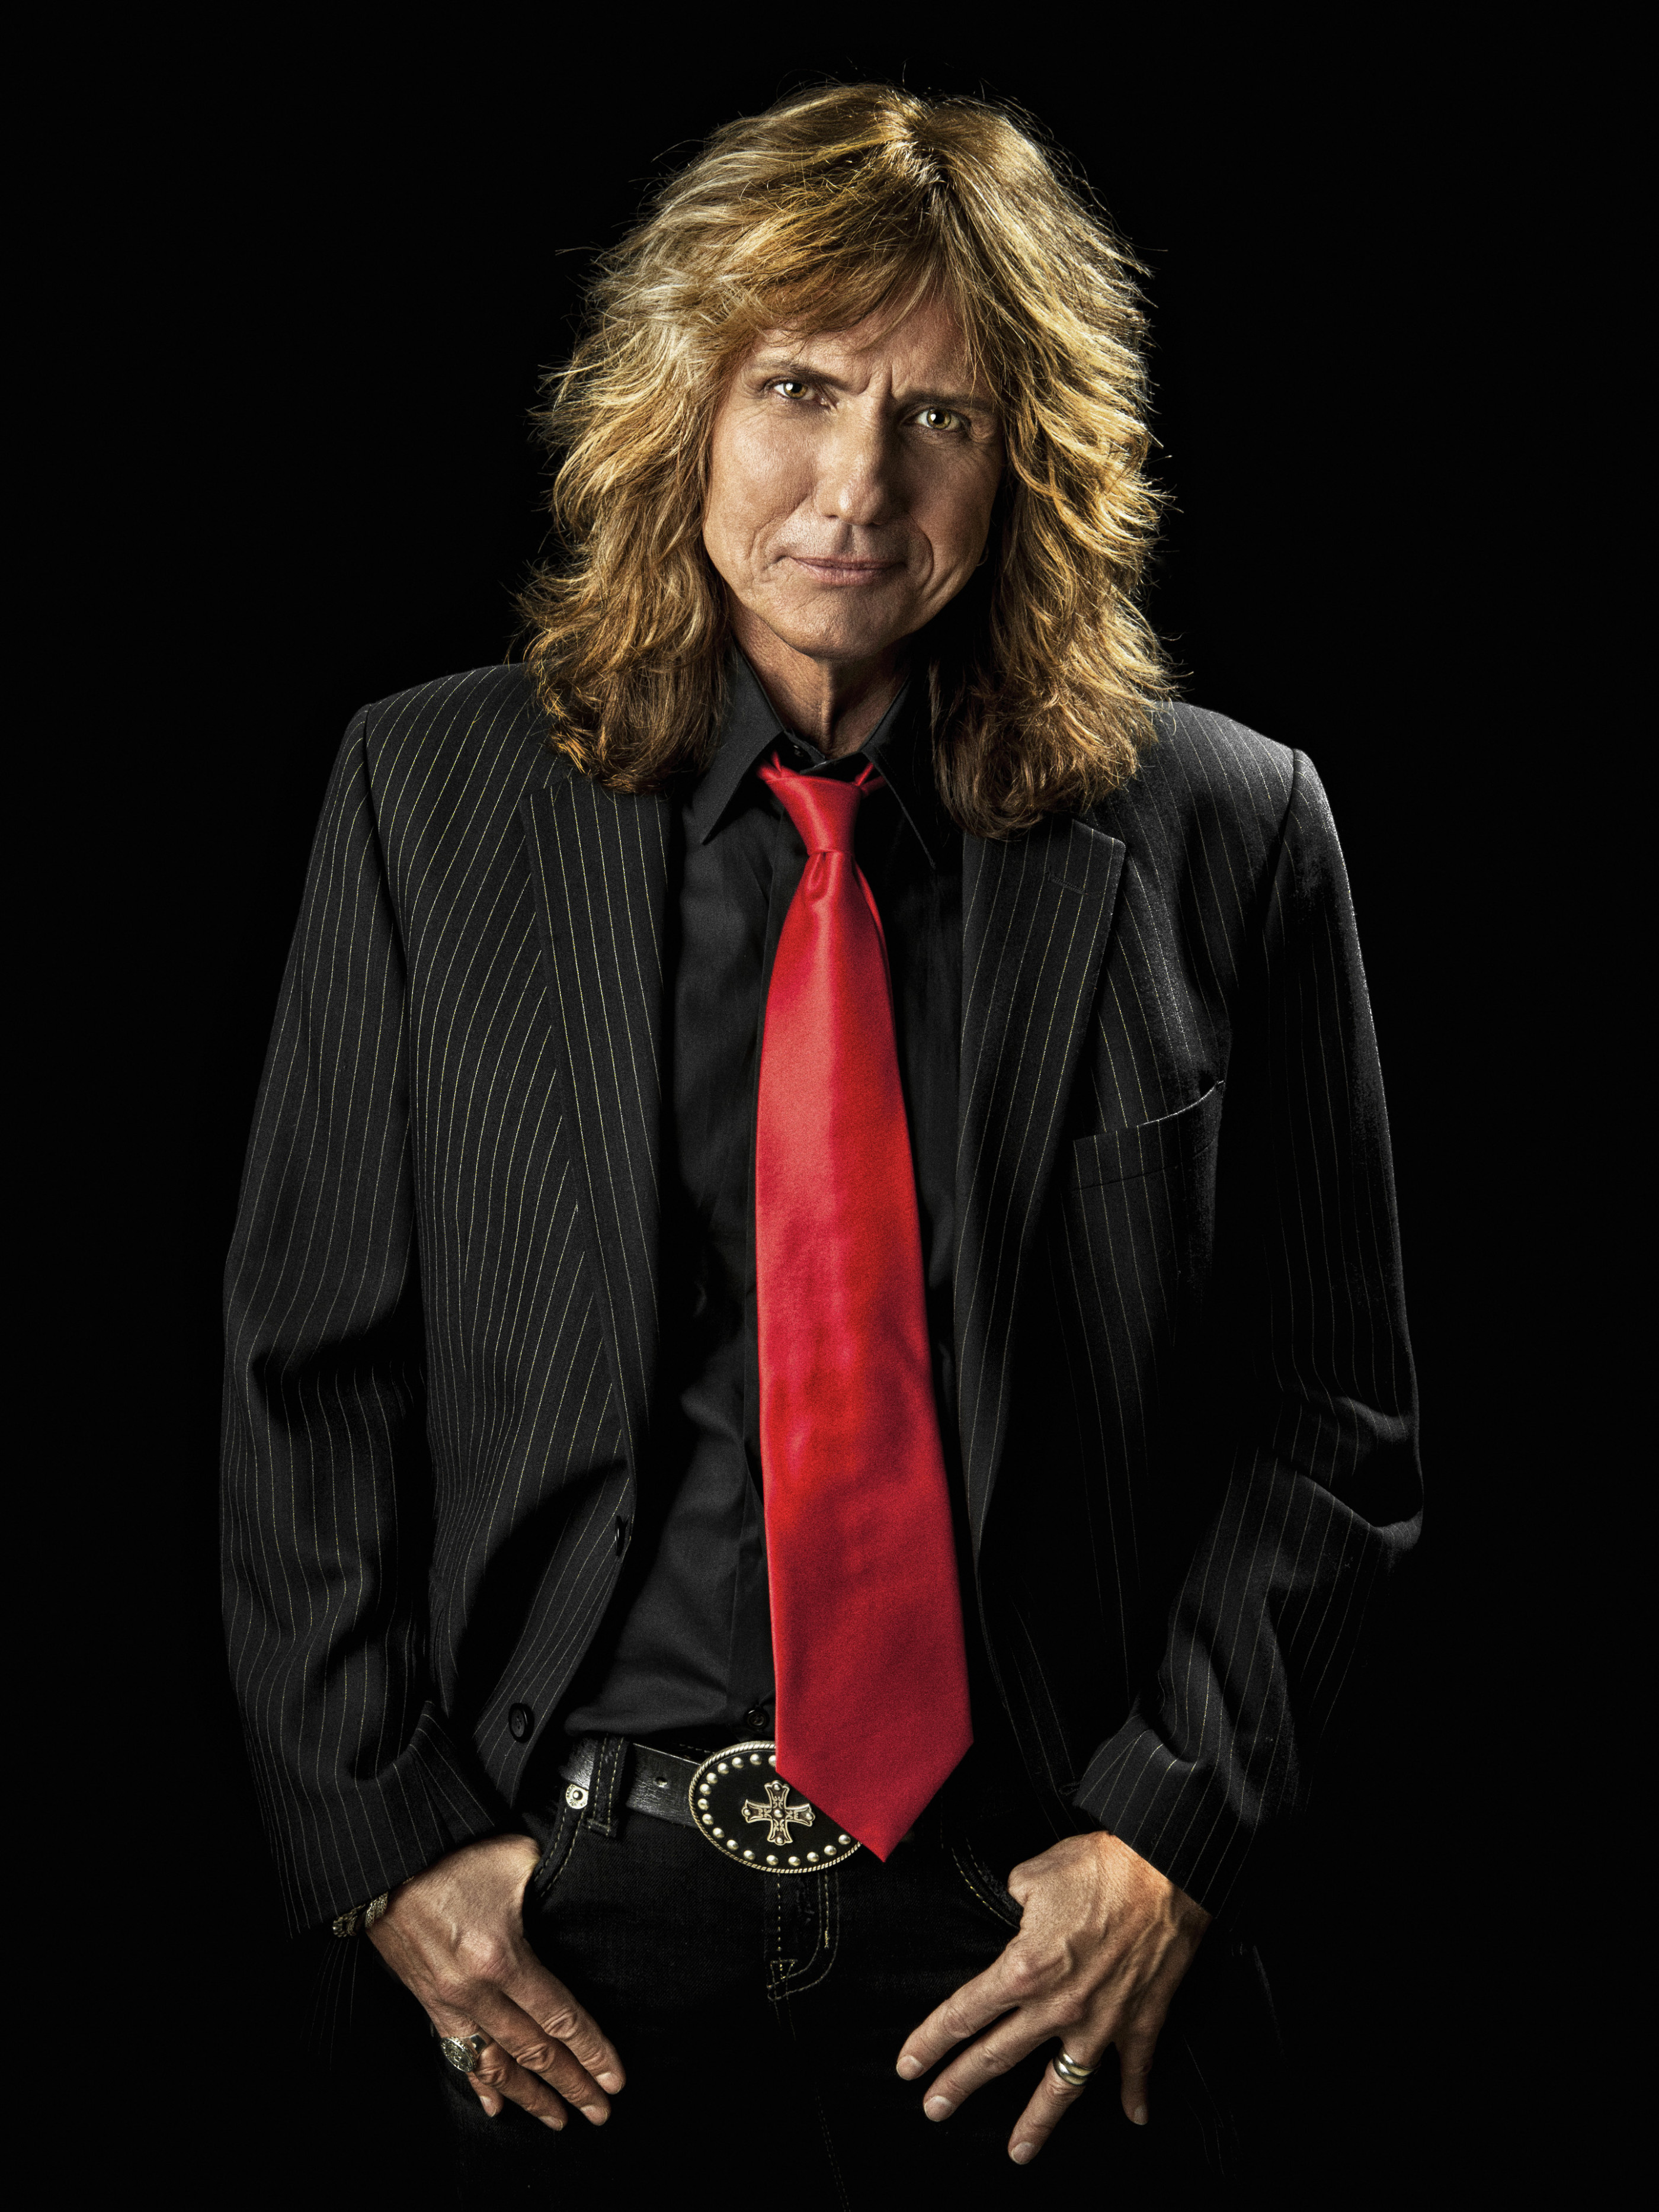 David Coverdale Whitesnake 2011 by Ash Newell